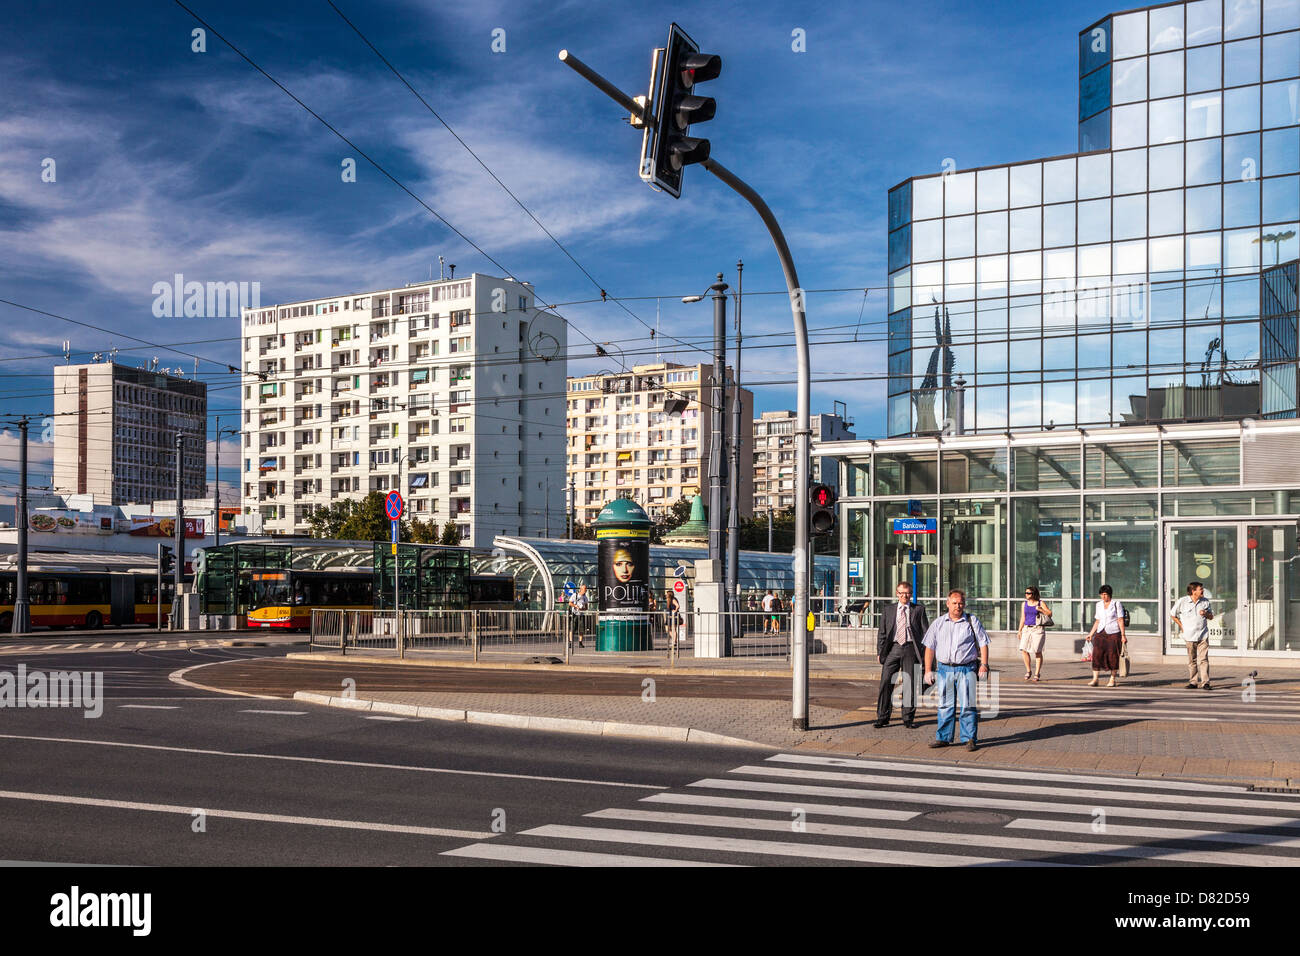 Typical Eastern European city centre summer street scene at Plac Bankowy (Bank Square) in Warsaw, Poland. - Stock Image